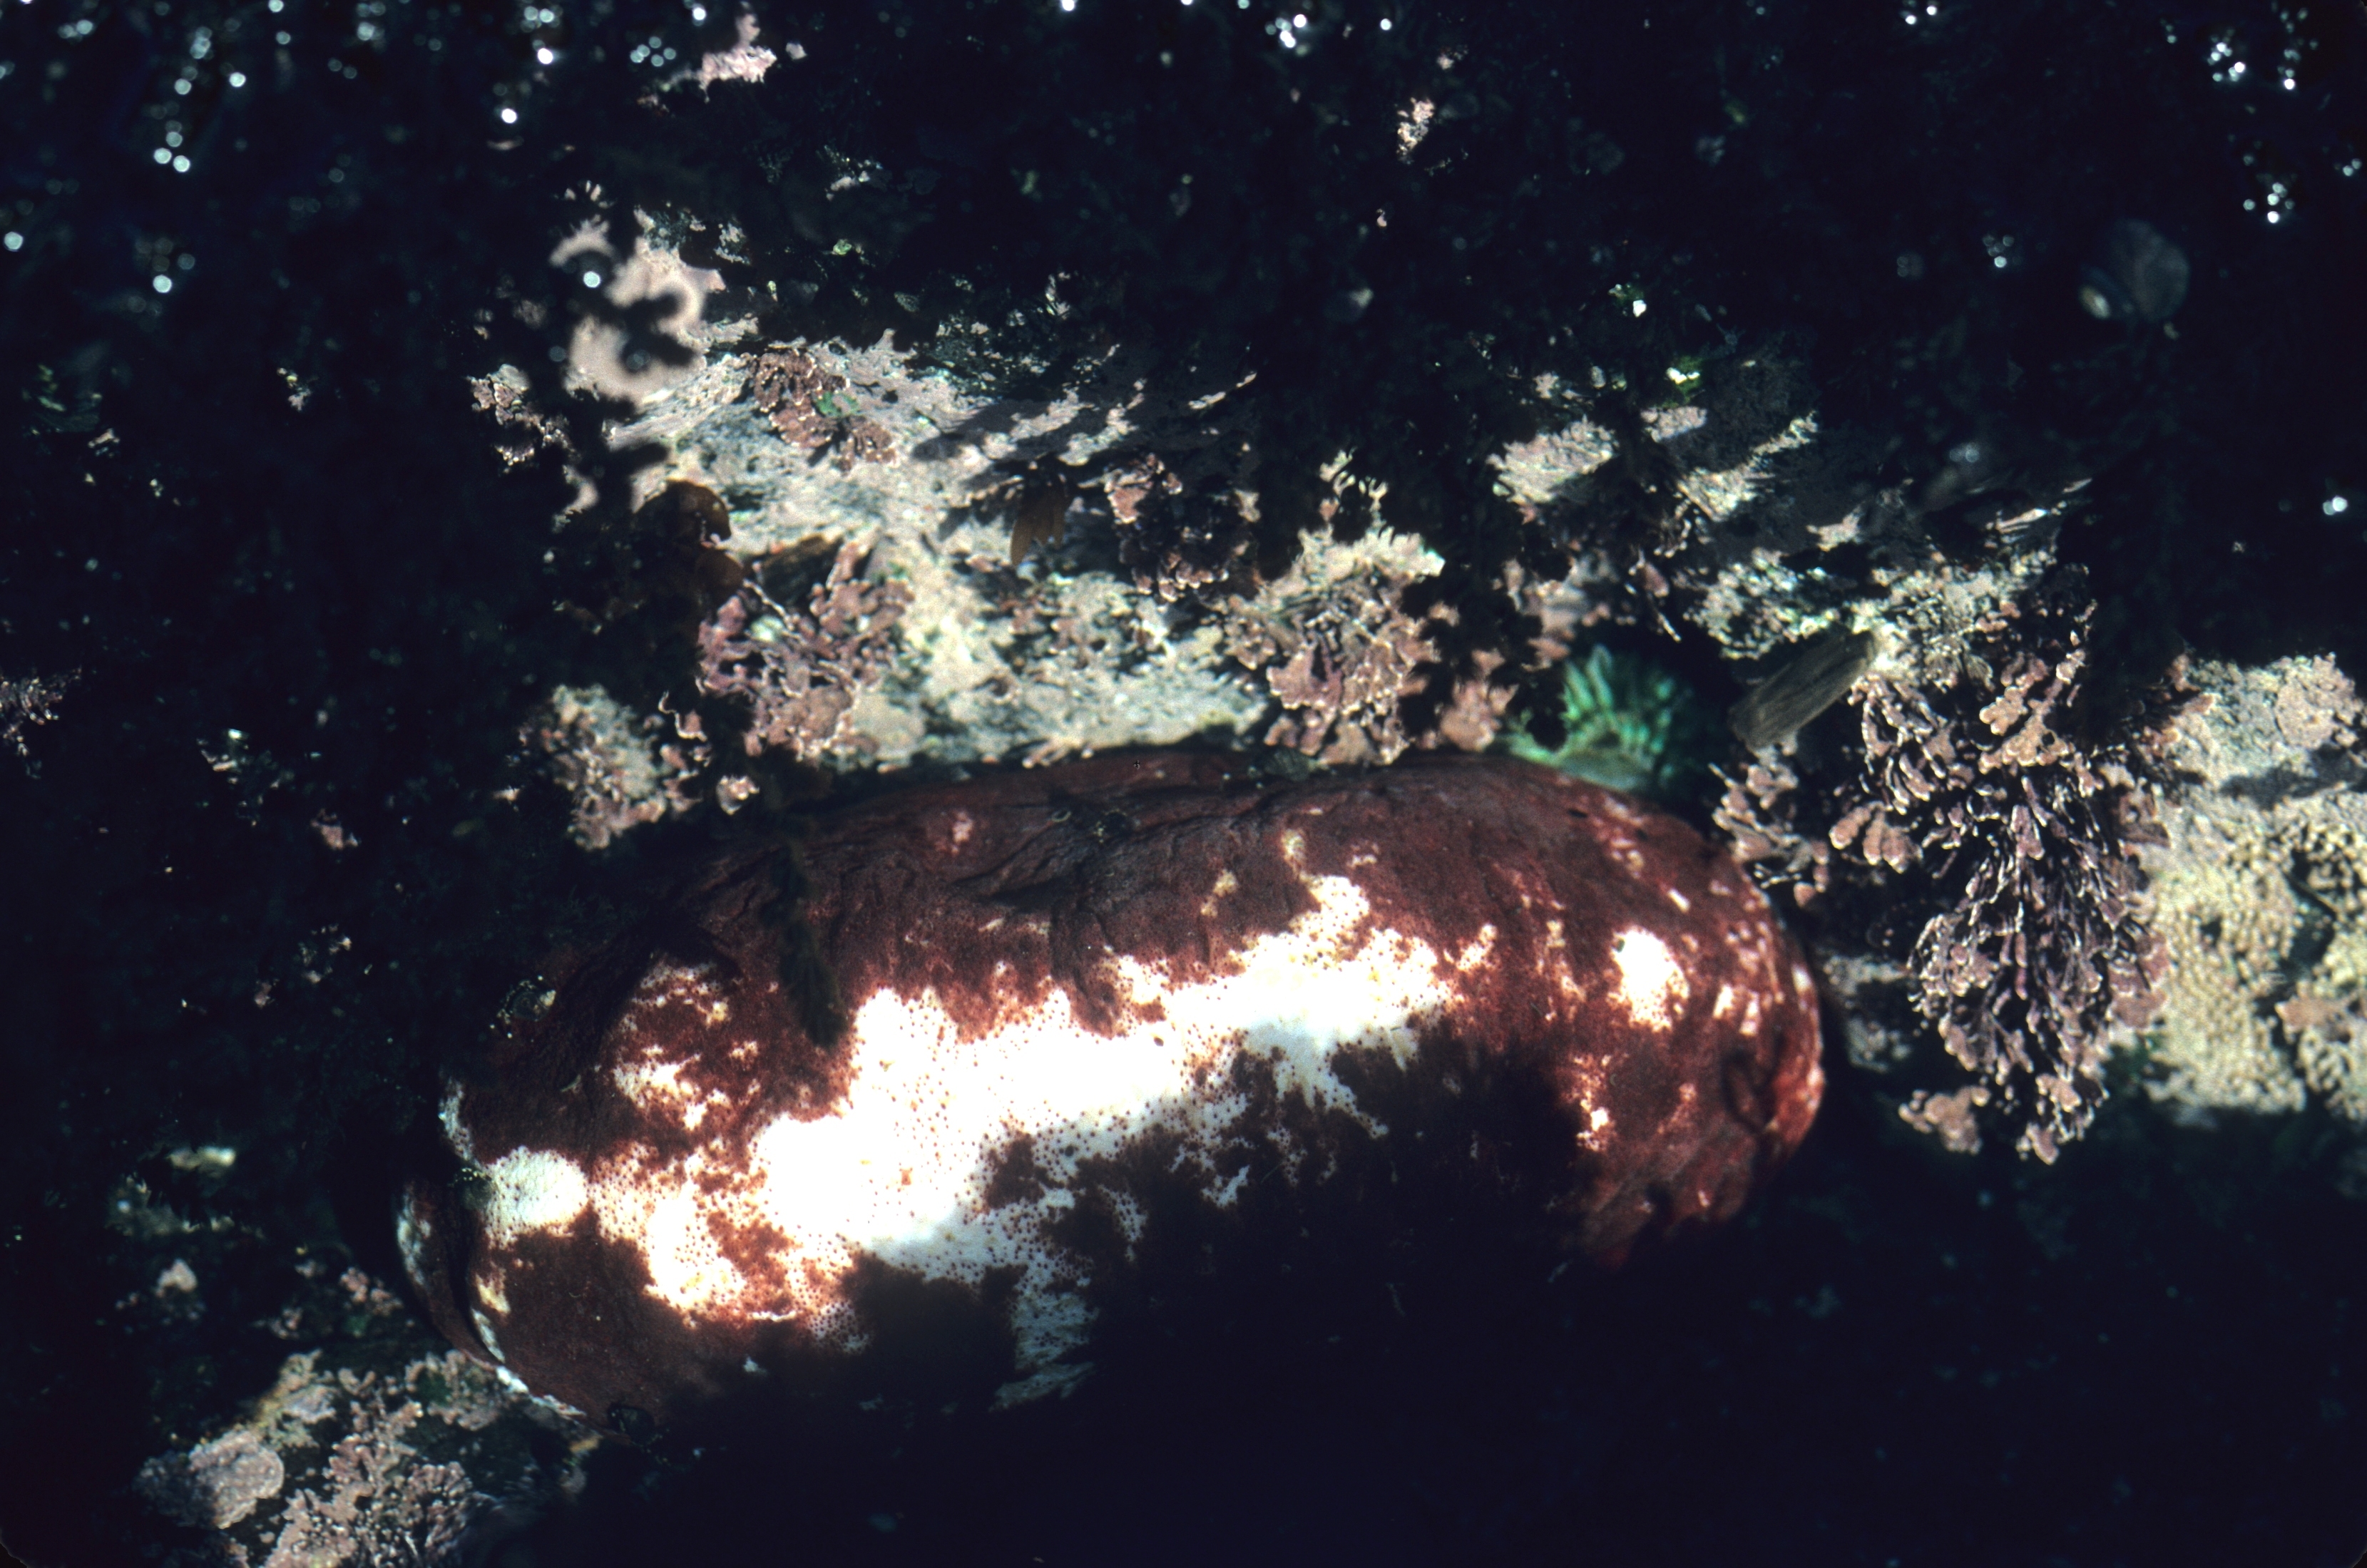 Image of giant Pacific chiton